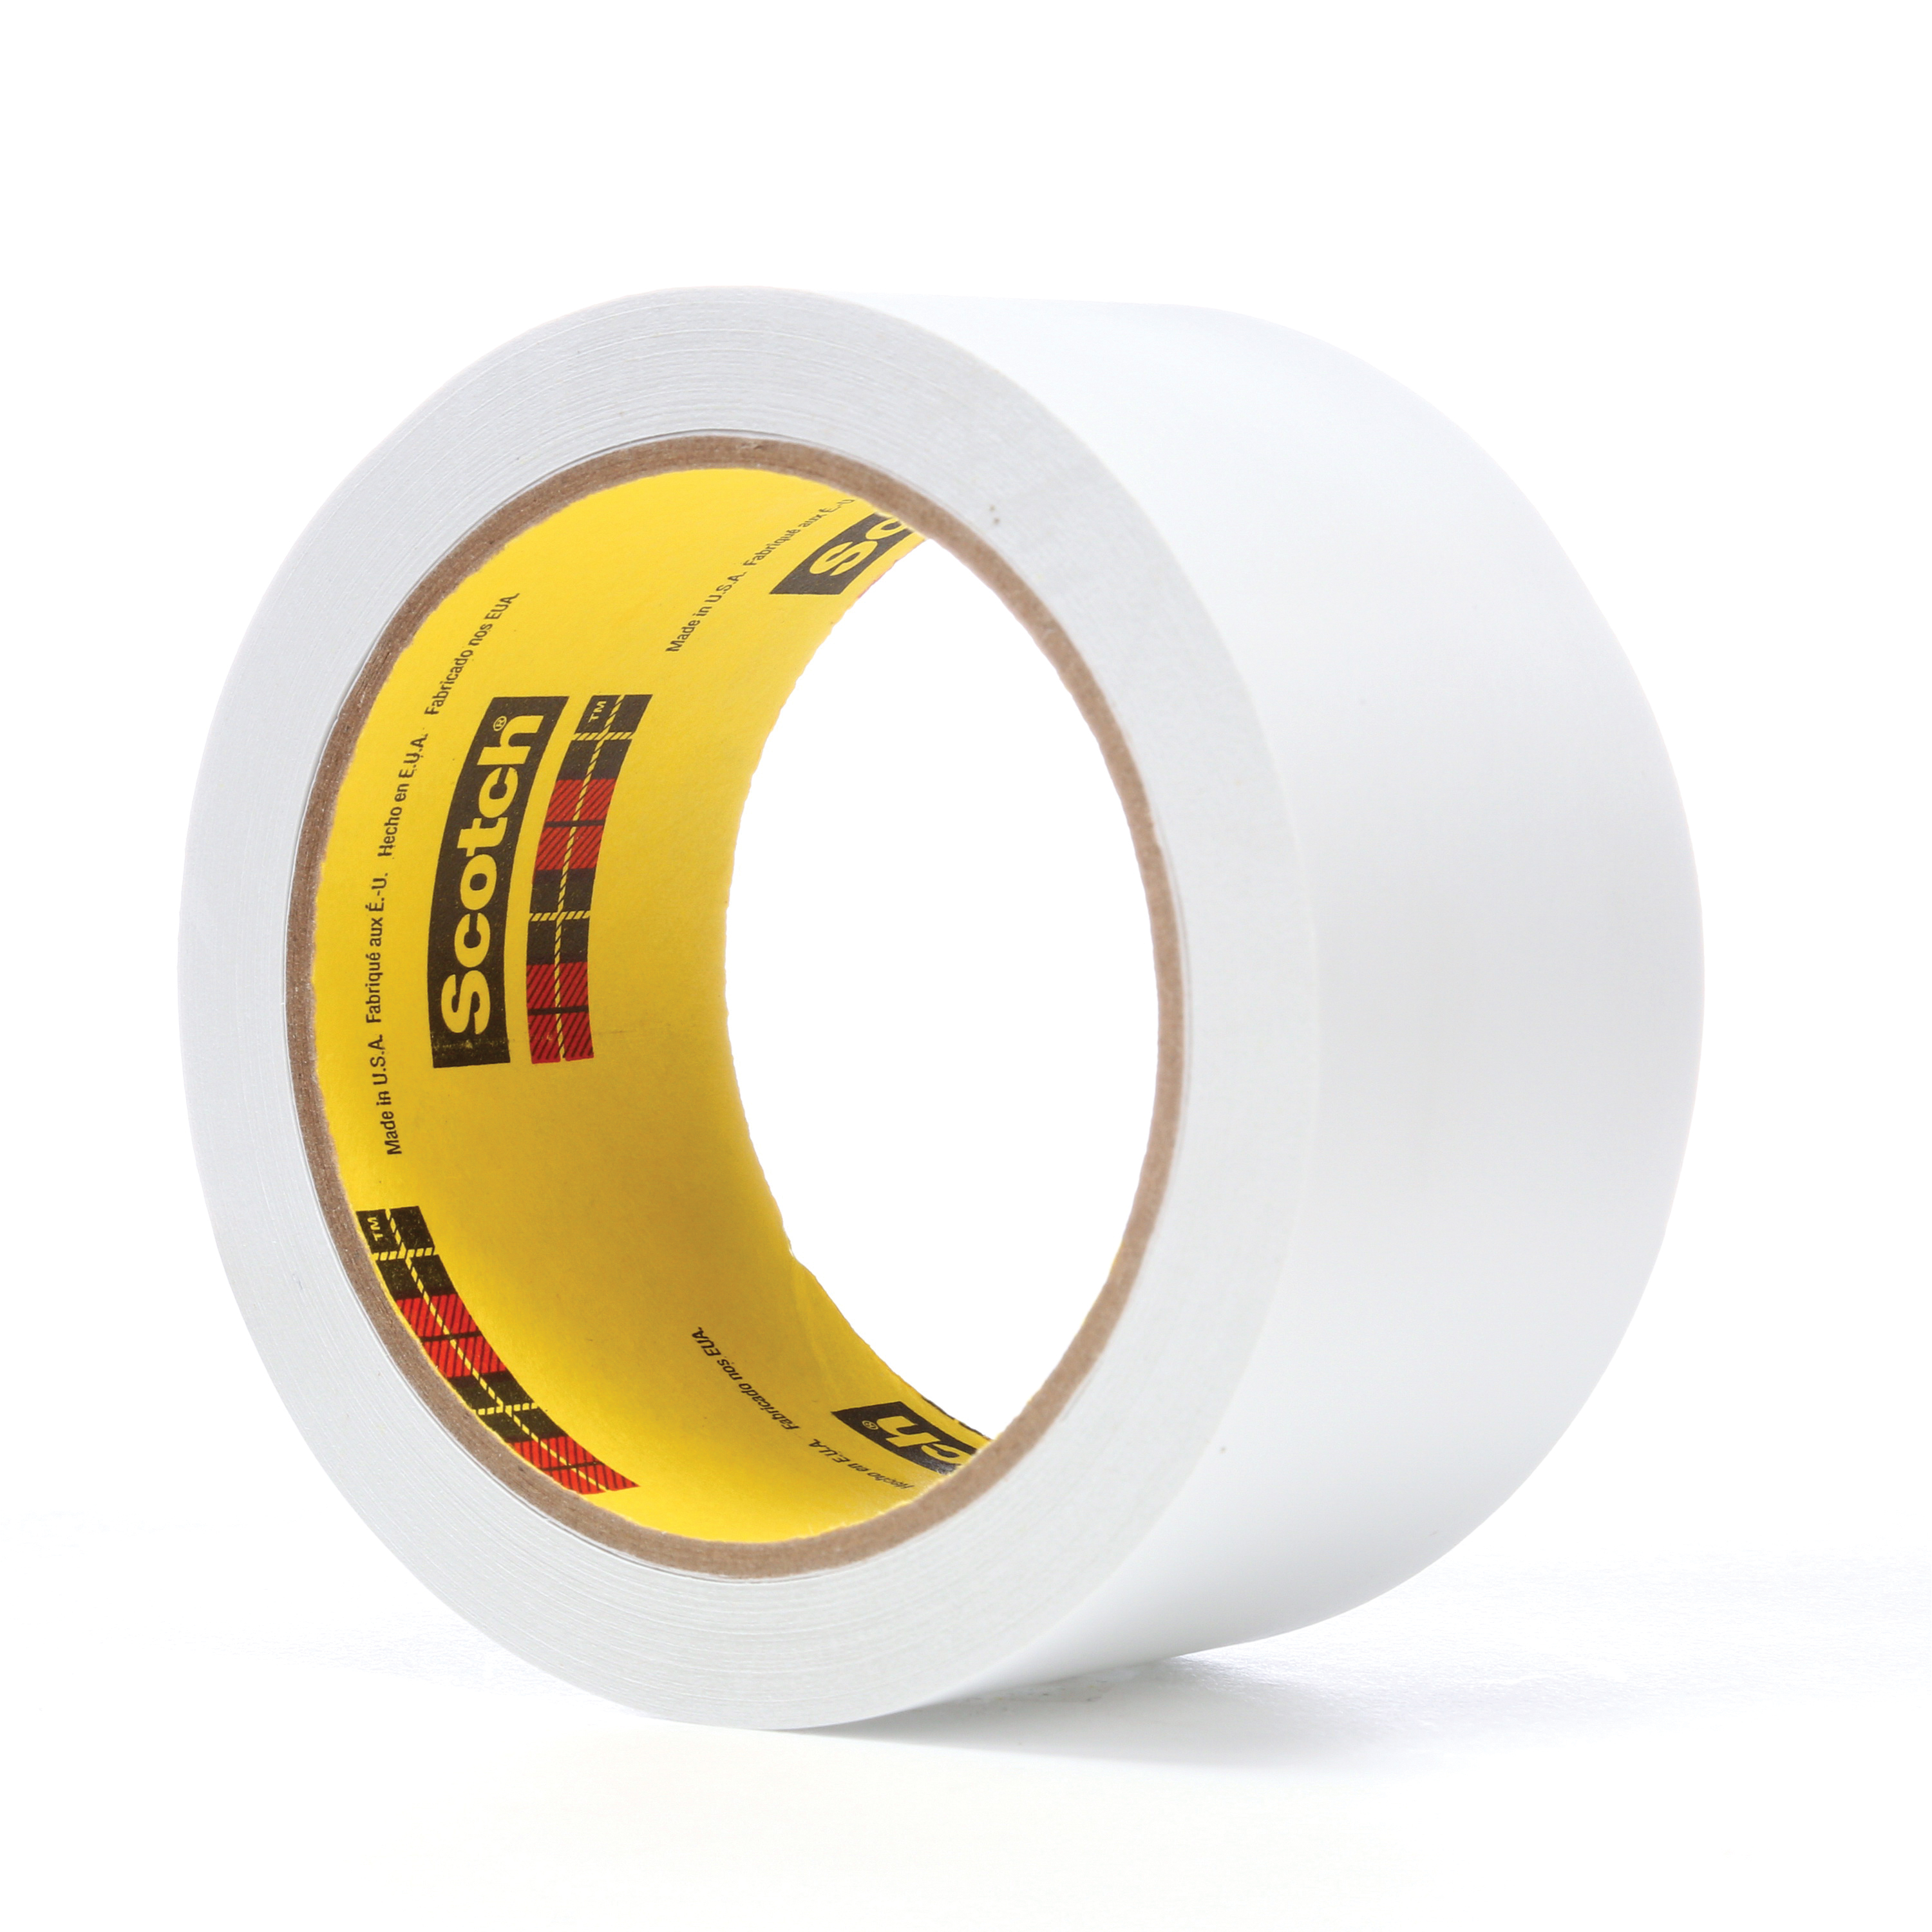 3M™ 021200-86010 Low Tack Tape, 36 yd L x 2 in W, 3.8 mil THK, Acrylic Adhesive, Flatback Paper Backing